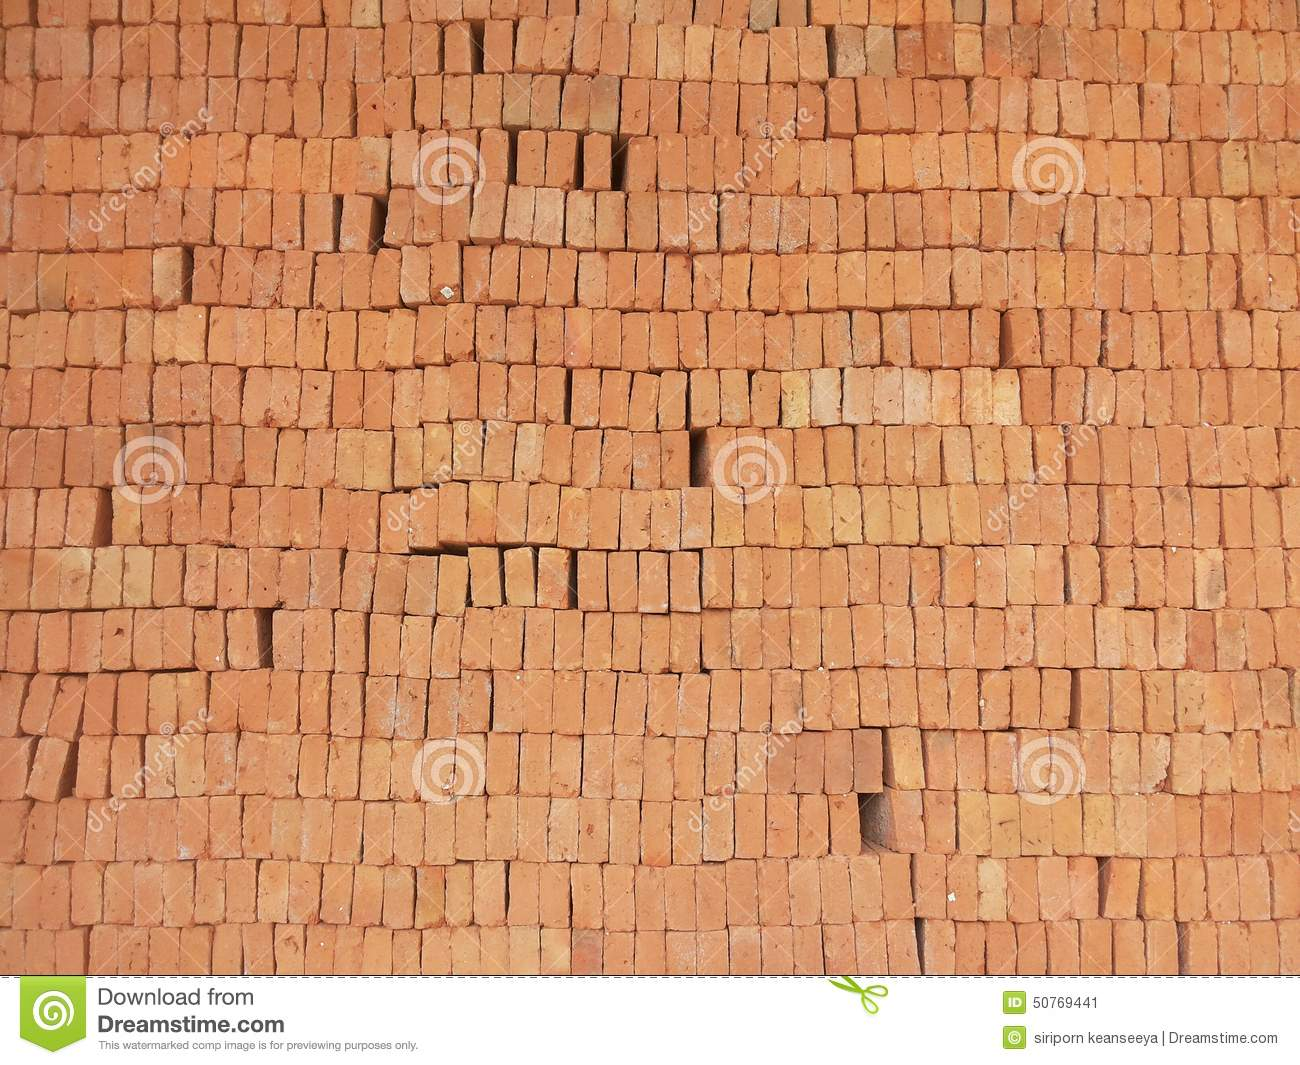 pile of bricks Synonyms for pile of brick at thesauruscom with free online thesaurus, antonyms, and definitions find descriptive alternatives for pile of brick.